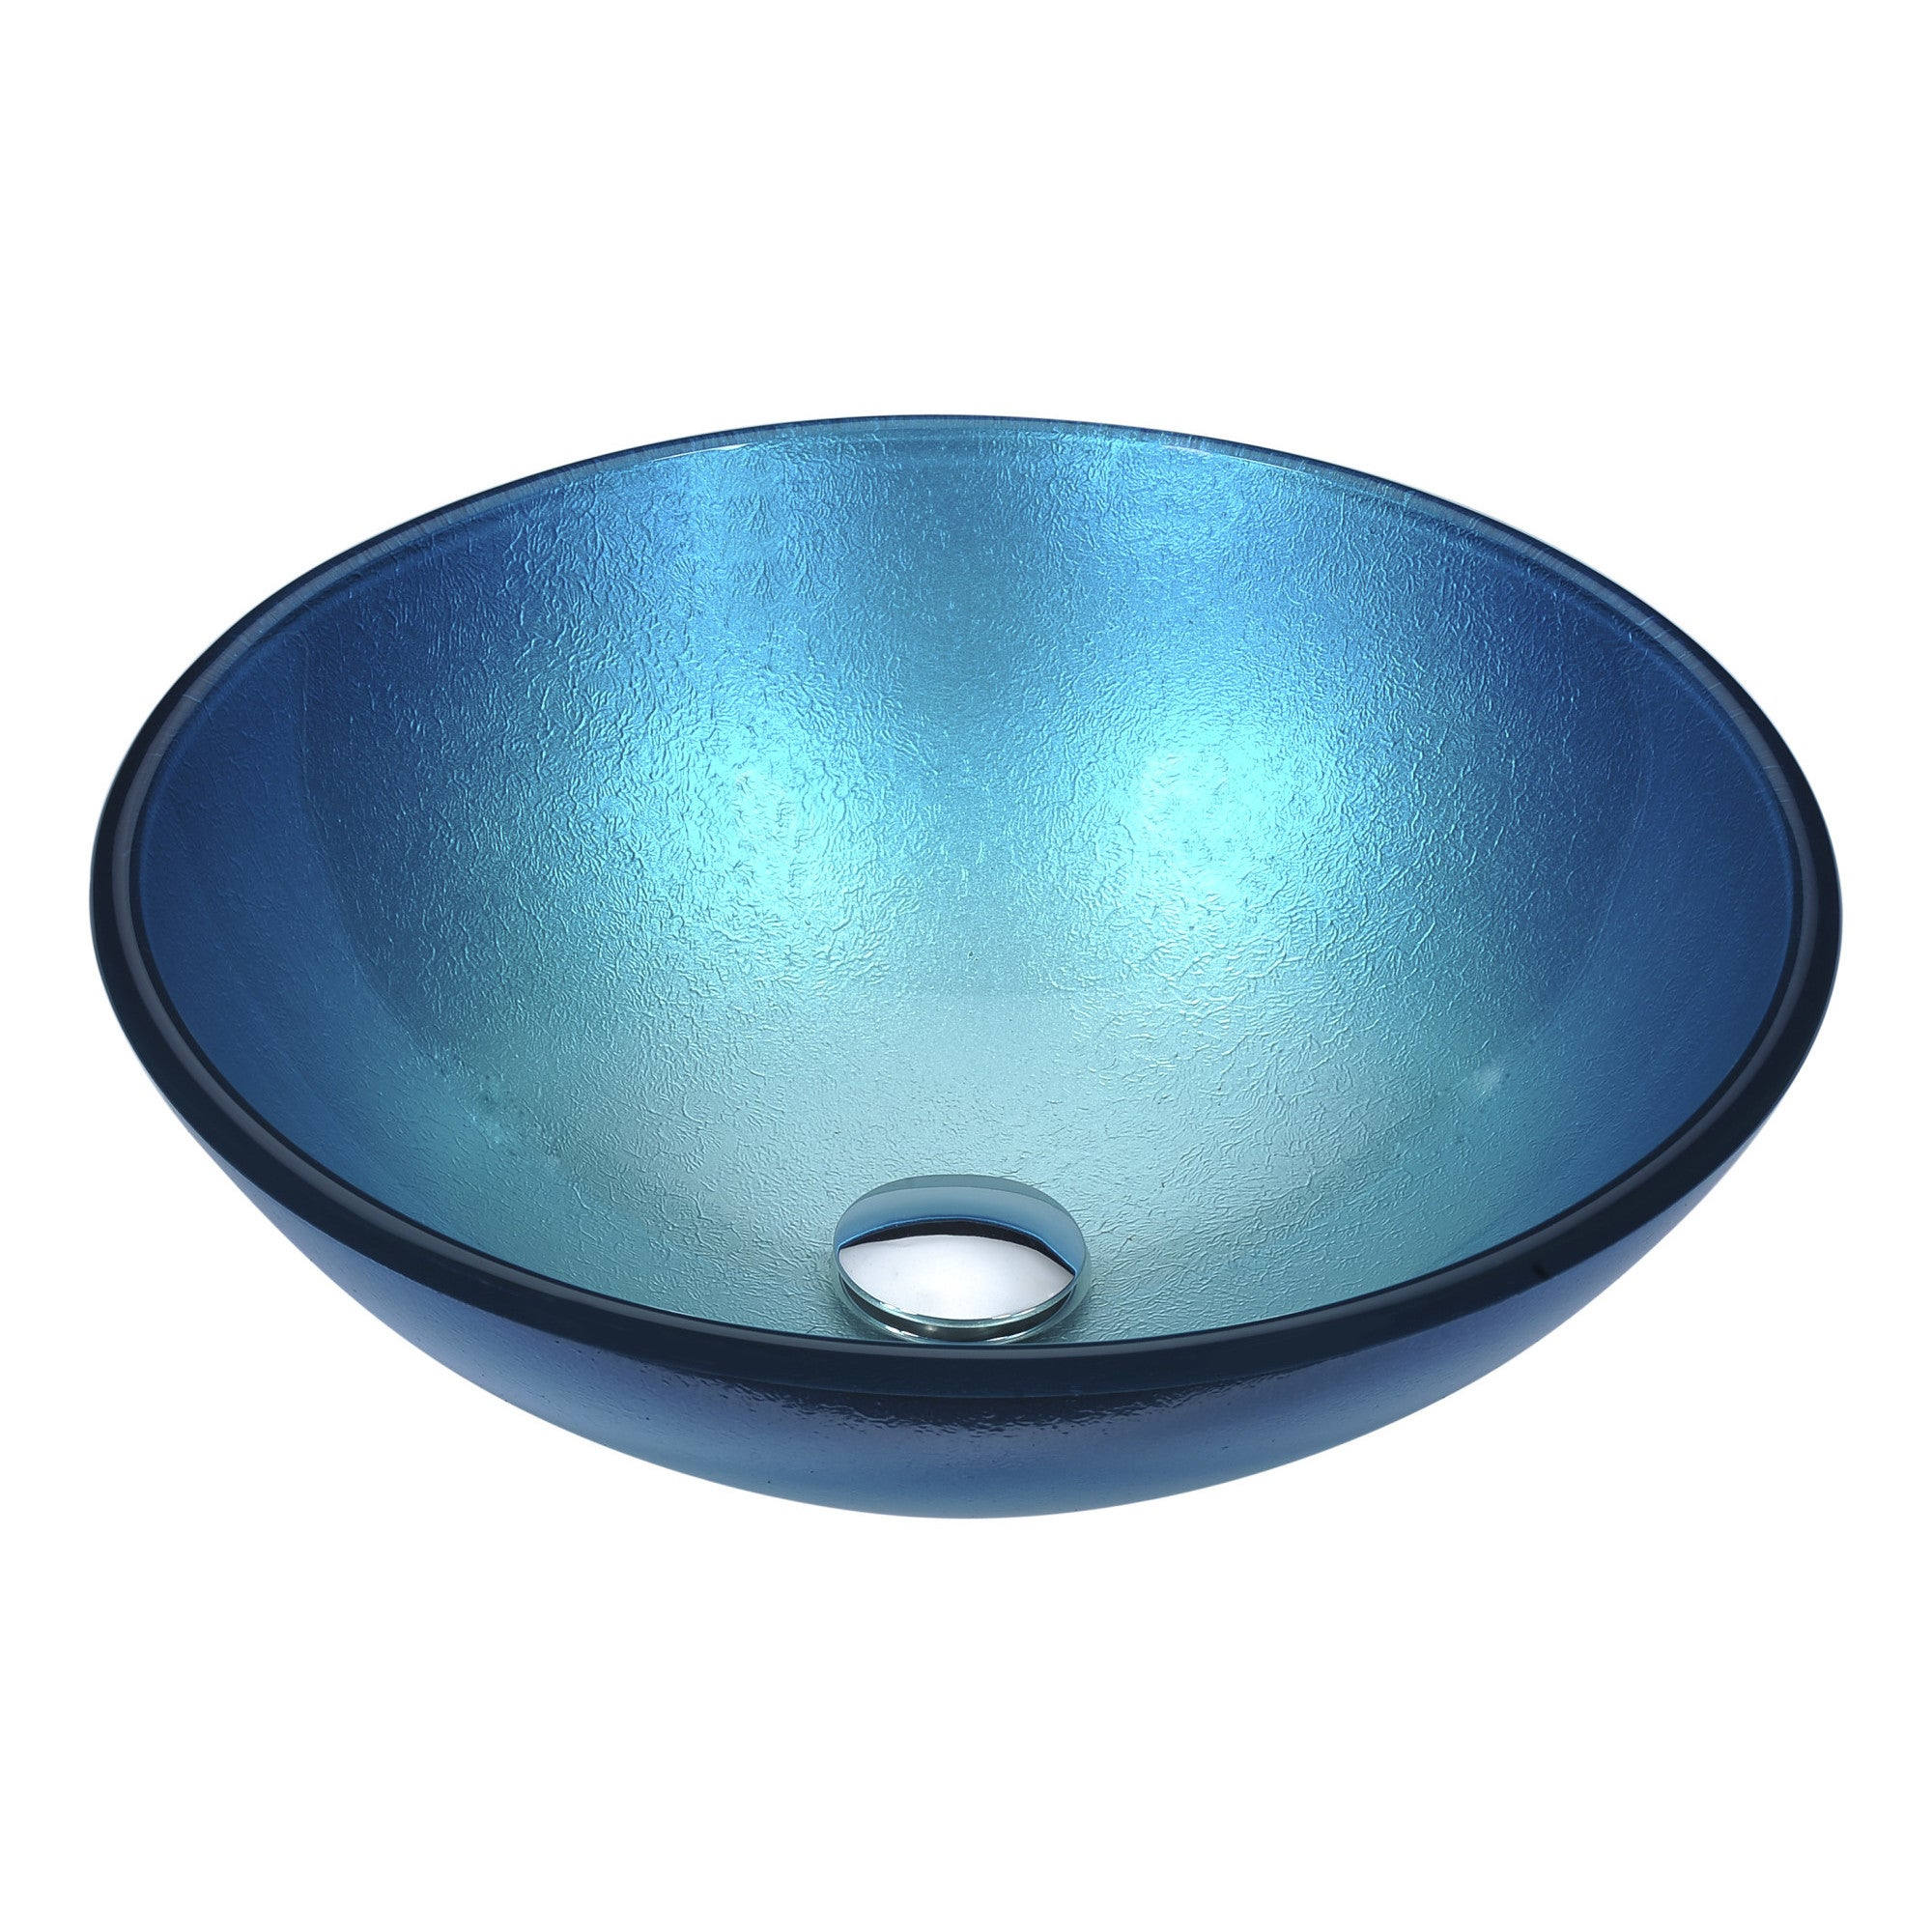 Anzzi Posh Series Silver Blue Deco-glass Vessel Sink - Free Shipping ...